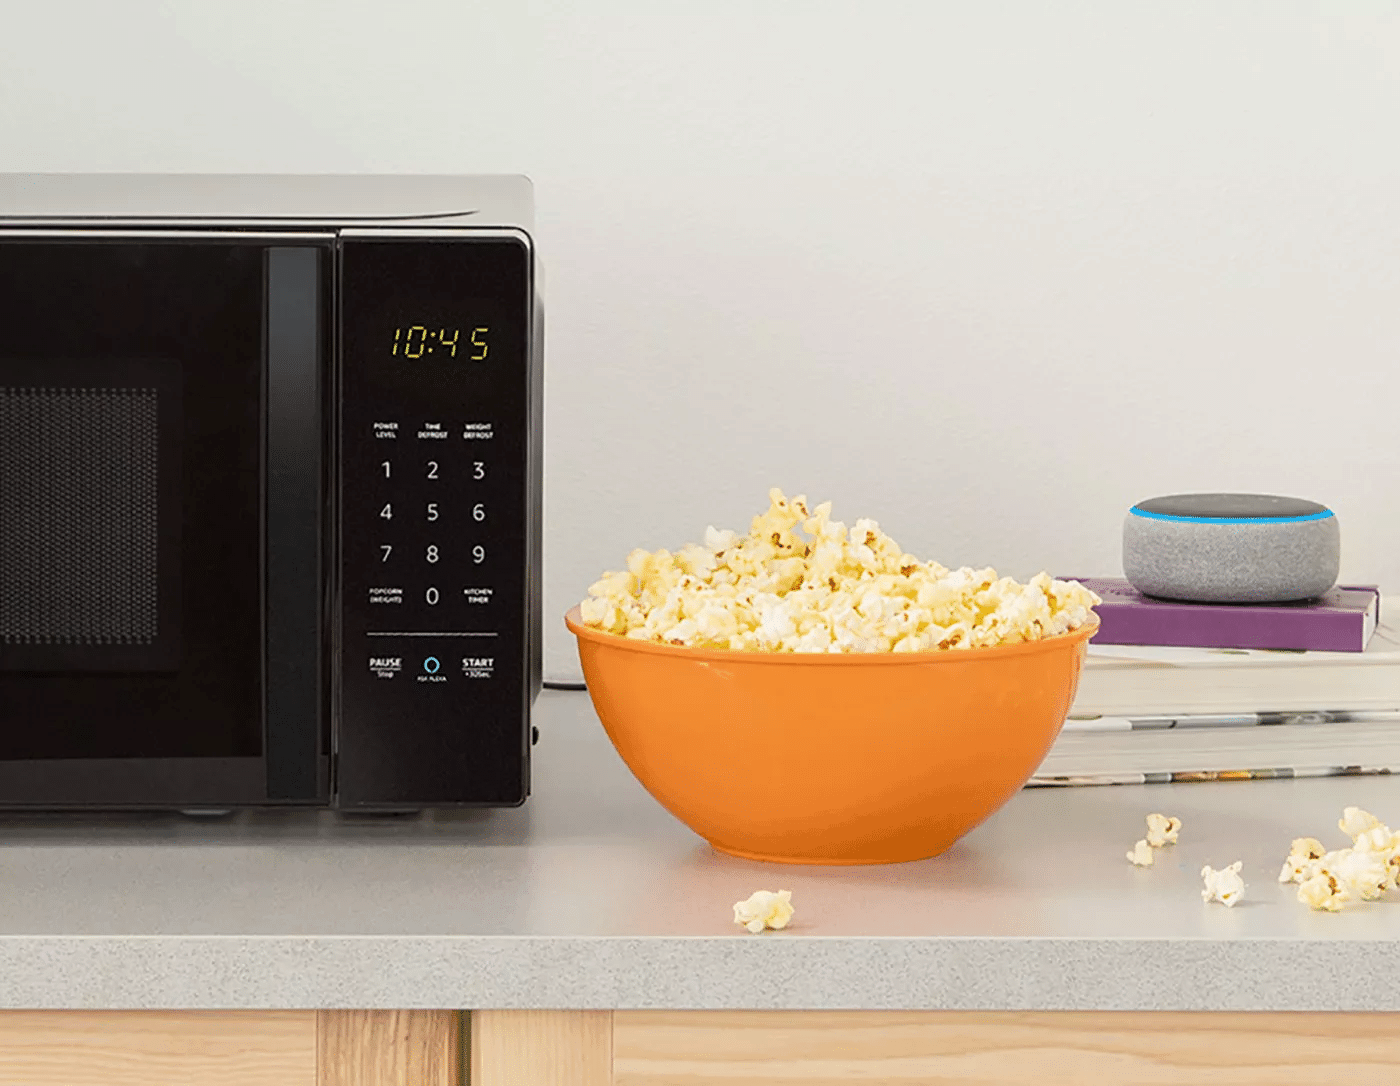 $60 AmazonBasics Microwave with Alexa Announced Alongside Smart Plug and Echo Wall Clock